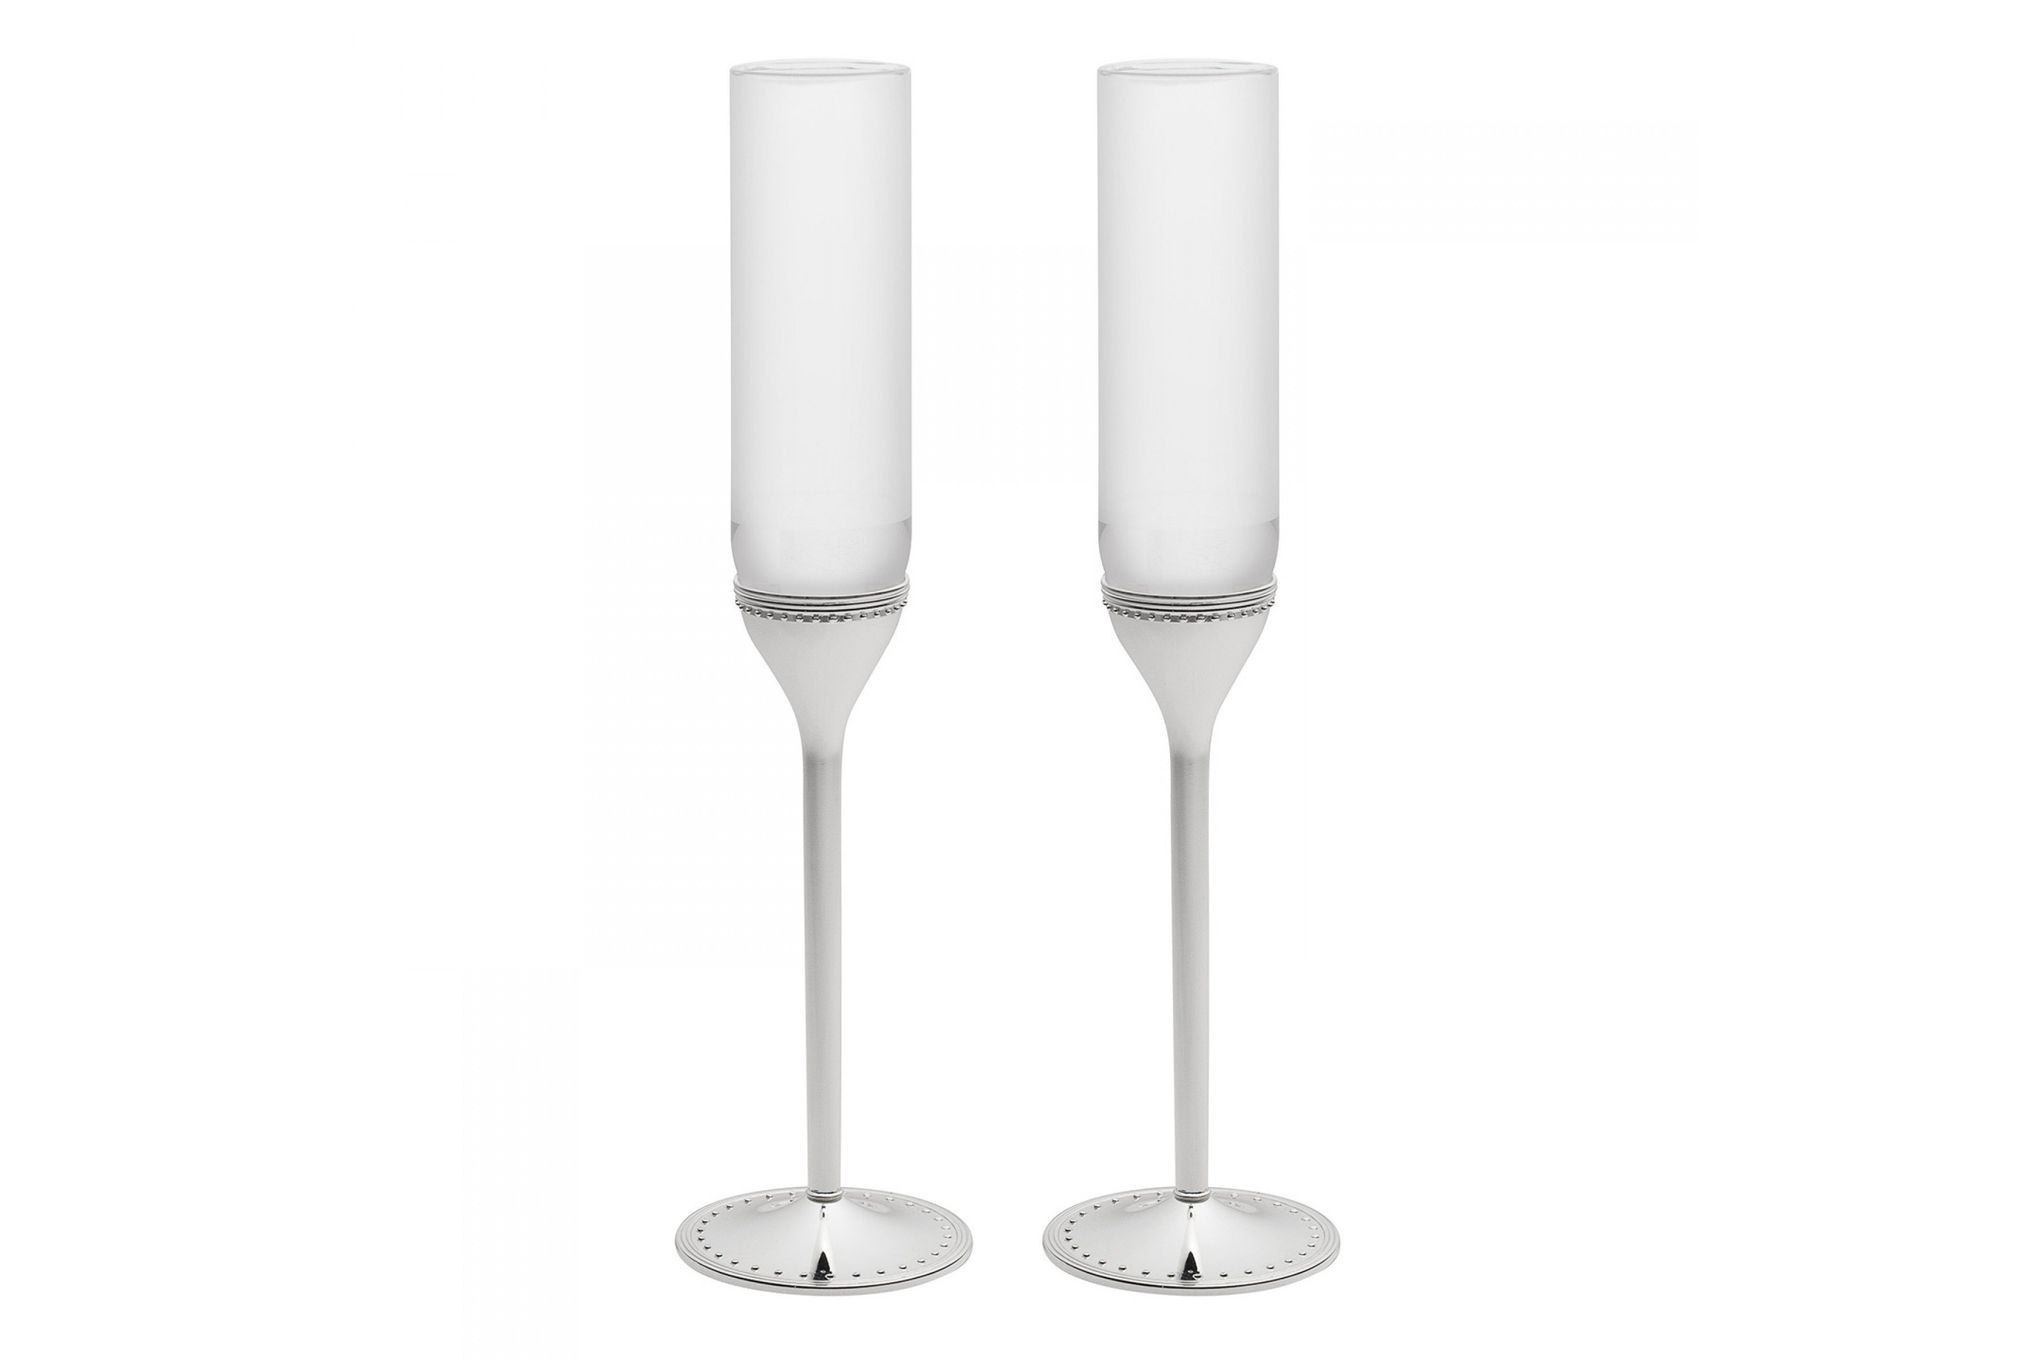 Vera Wang for Wedgwood Gifts & Accessories Toasting Flute Pair Grosgrain thumb 1